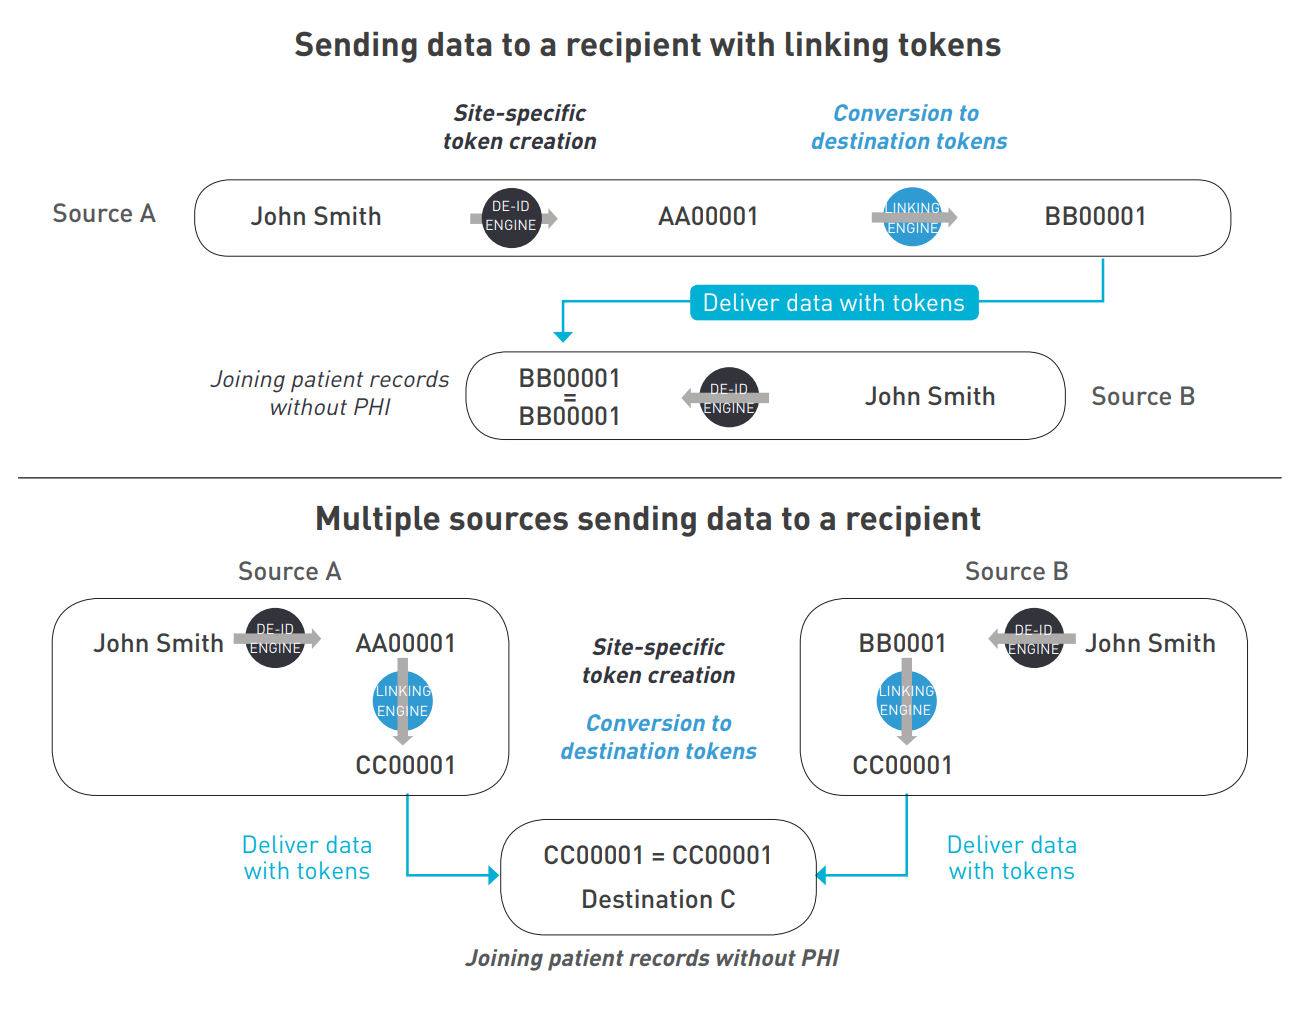 Tokenization and matching de-identified records suggested by Datavant